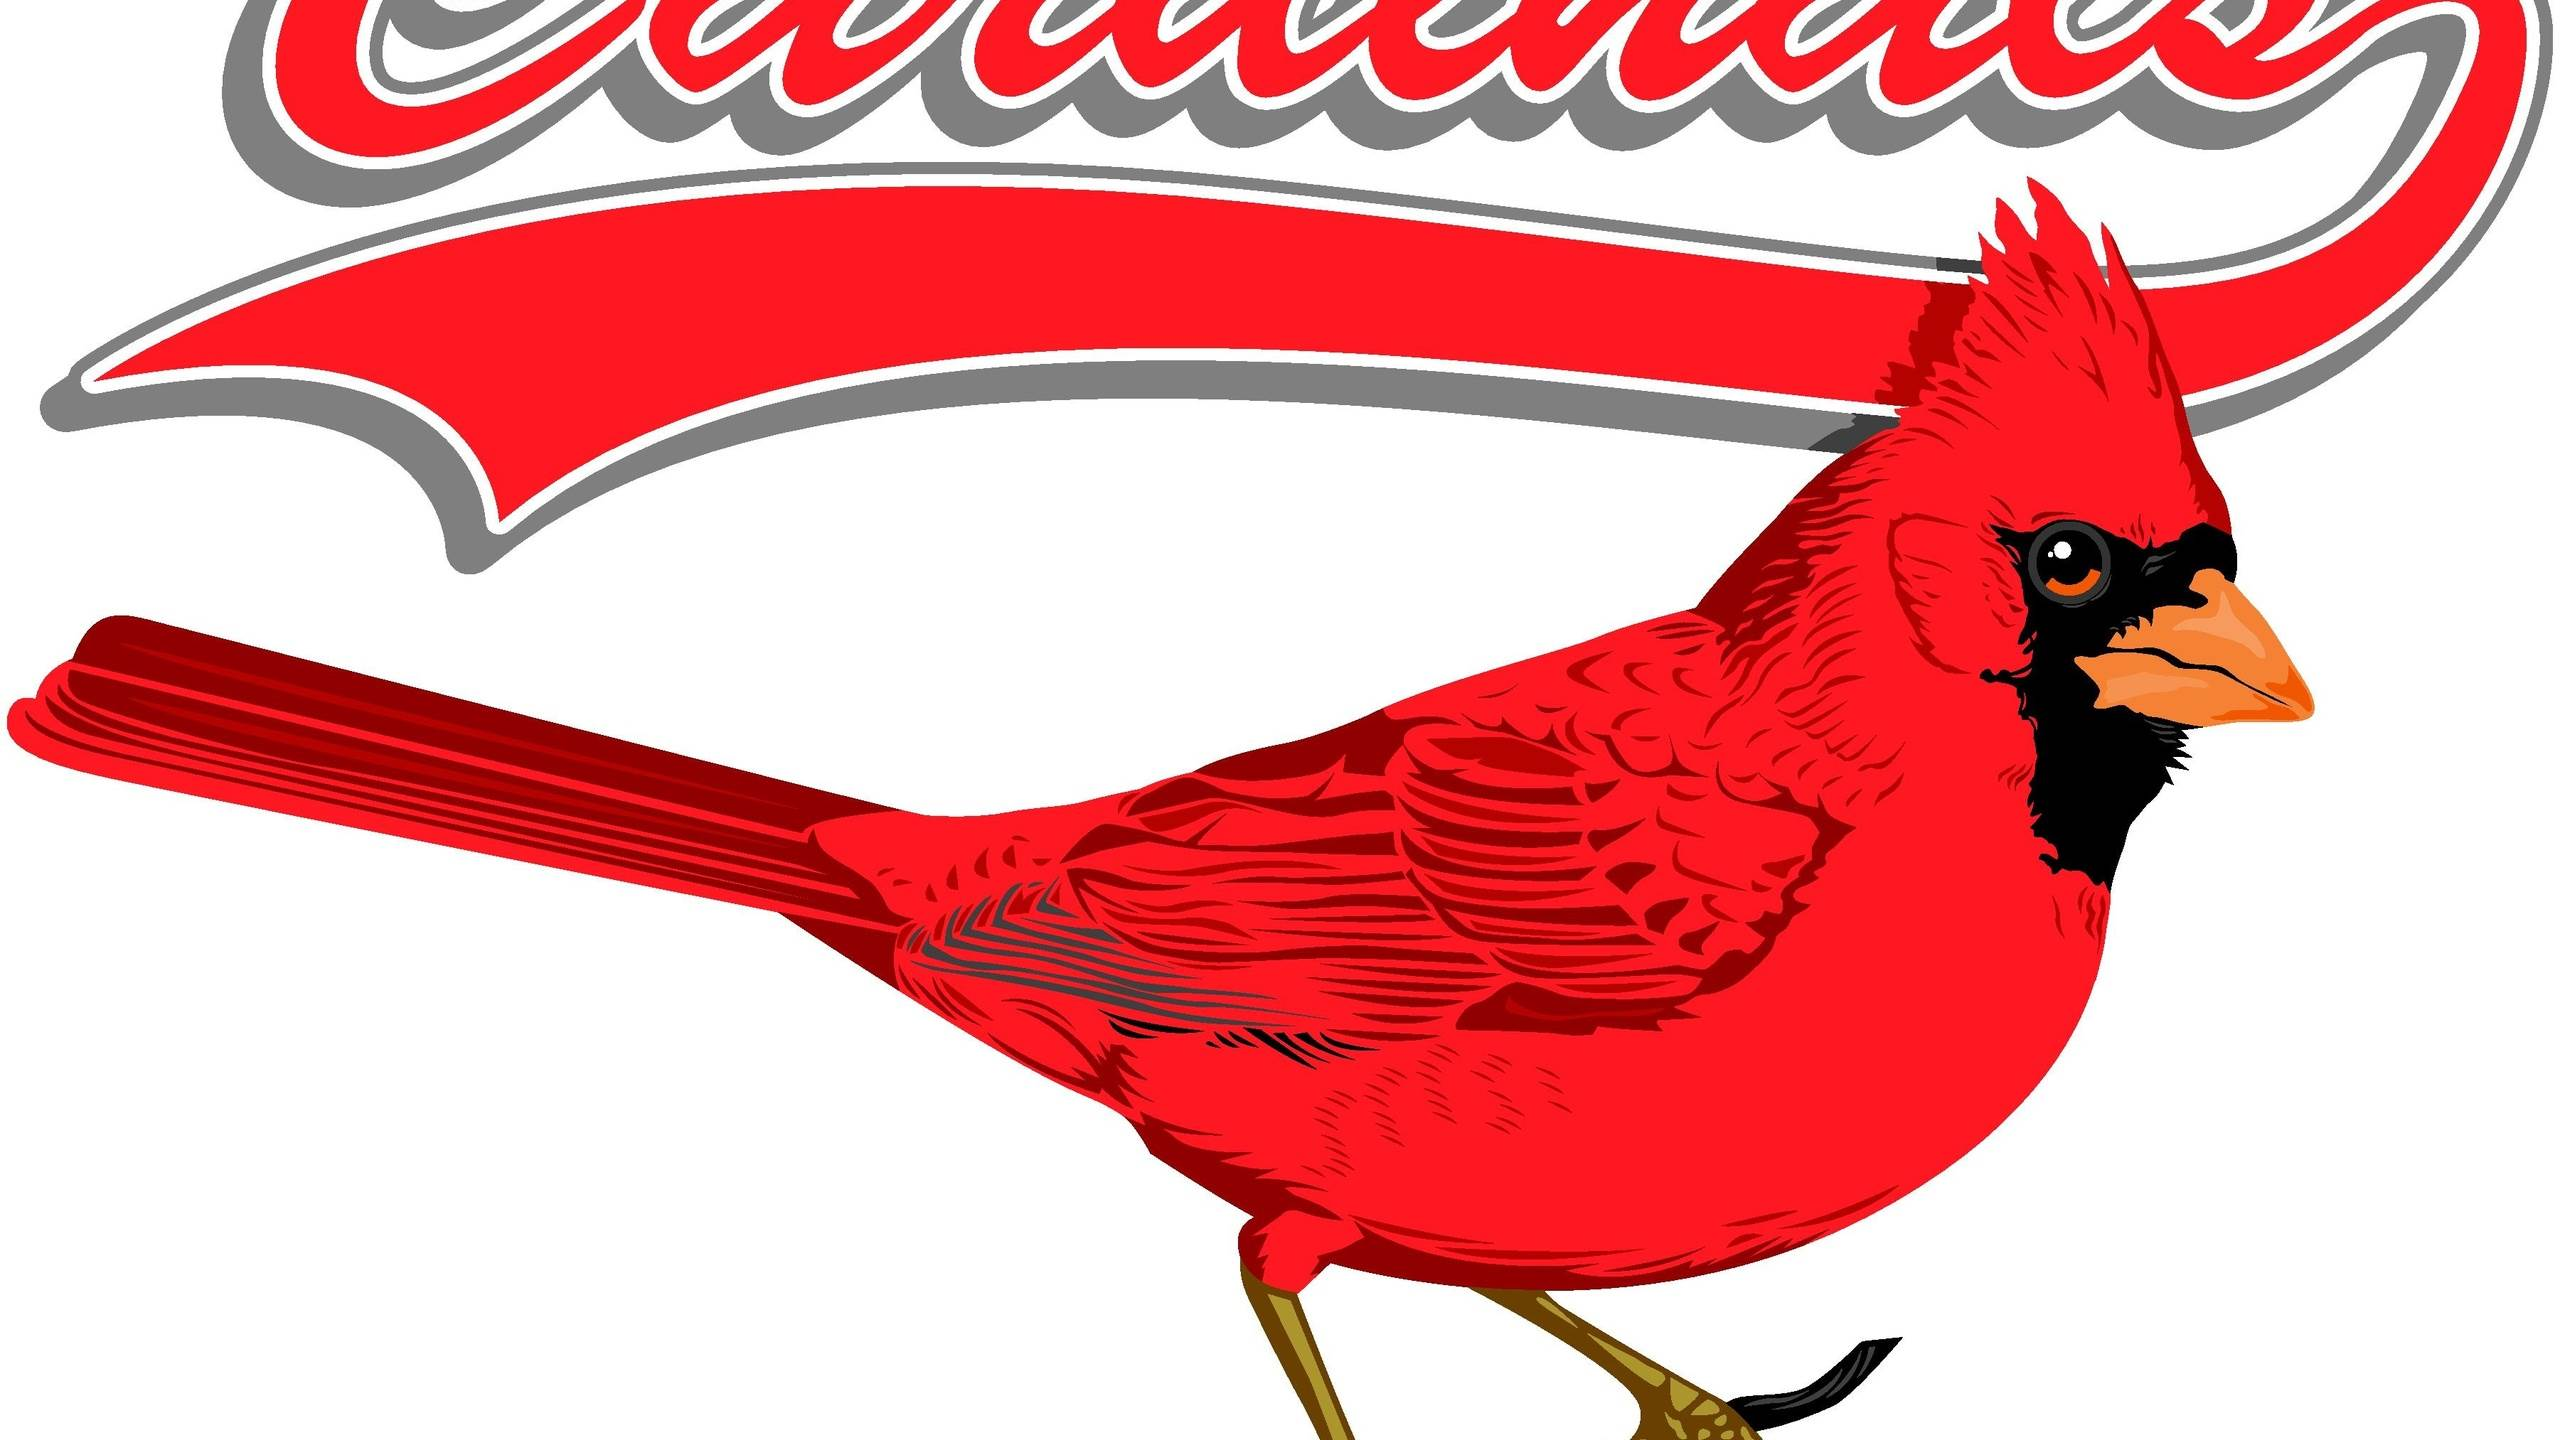 St Louis Cardinals Wallpaper Hd 2560x1440